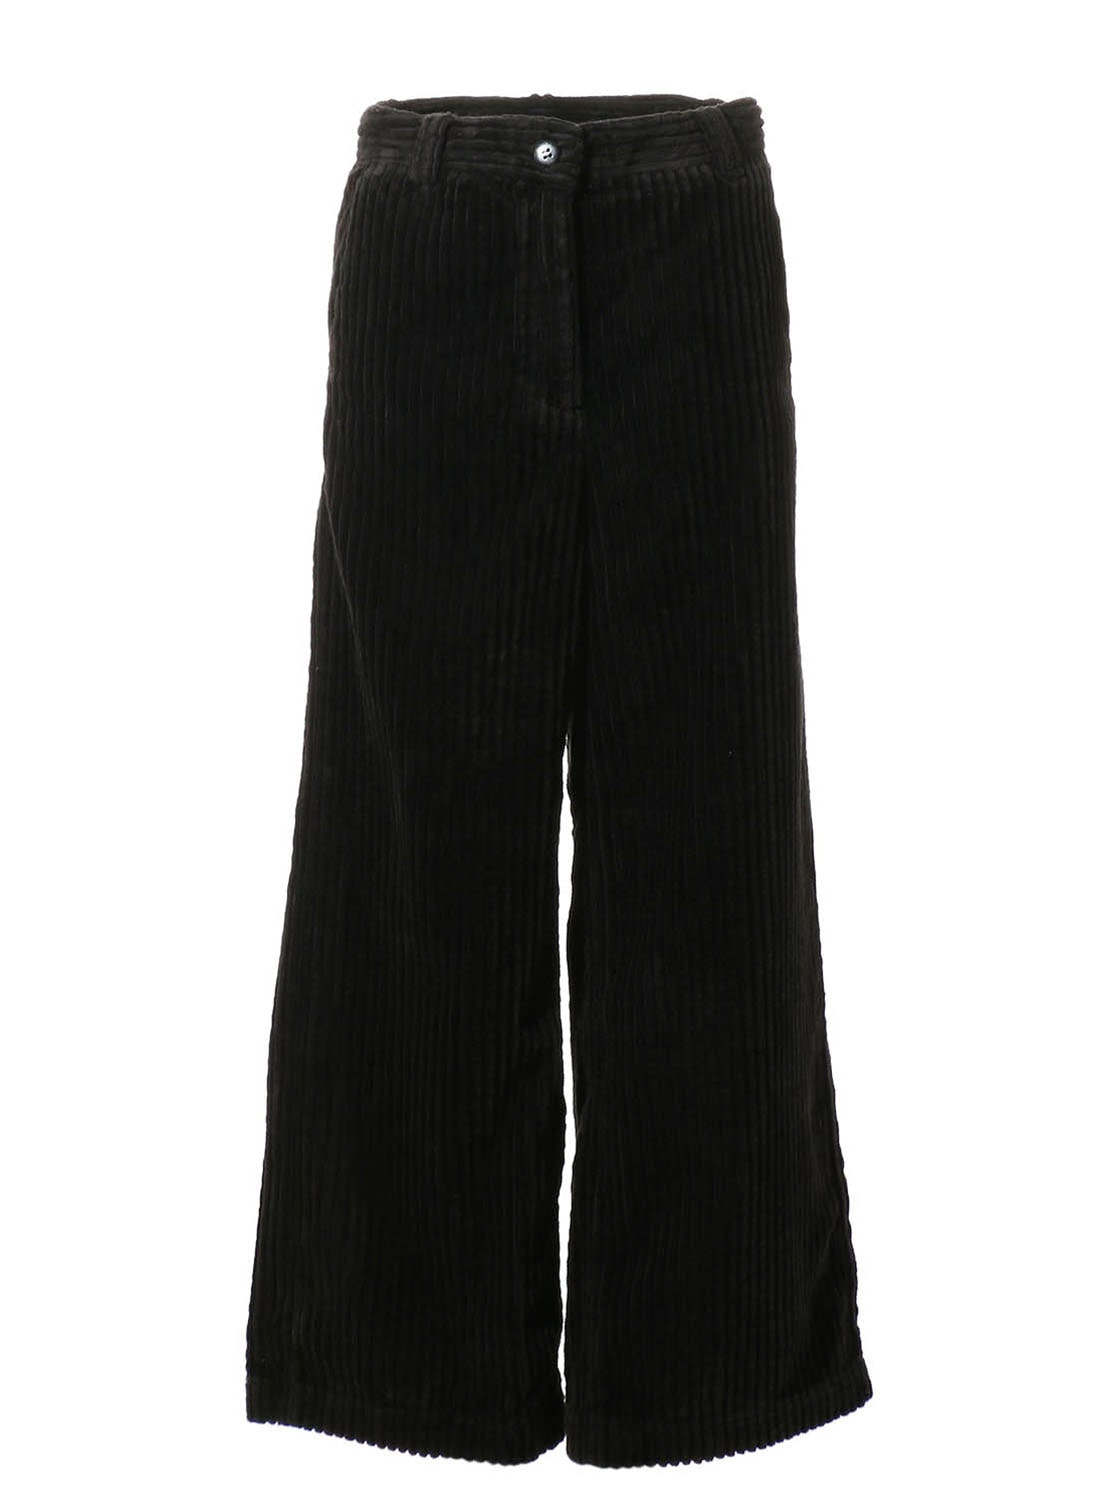 【日本限定】 BIG CORDUROY PANTS